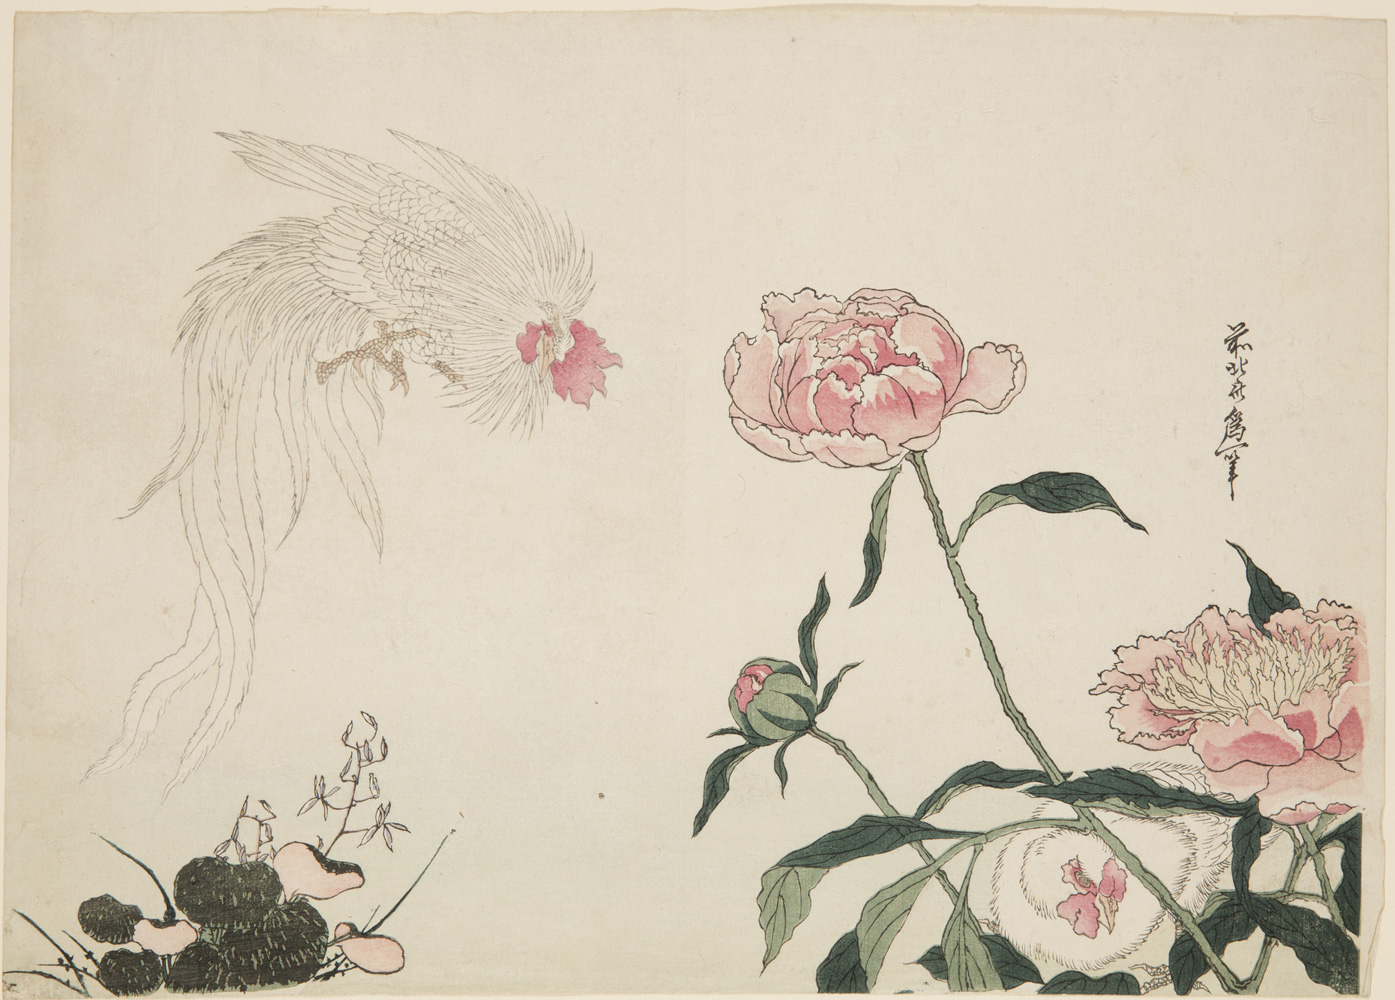 Japanese print of a flying rooster with long feathers on the left looking at a small hen crouching behind flowers on the right.